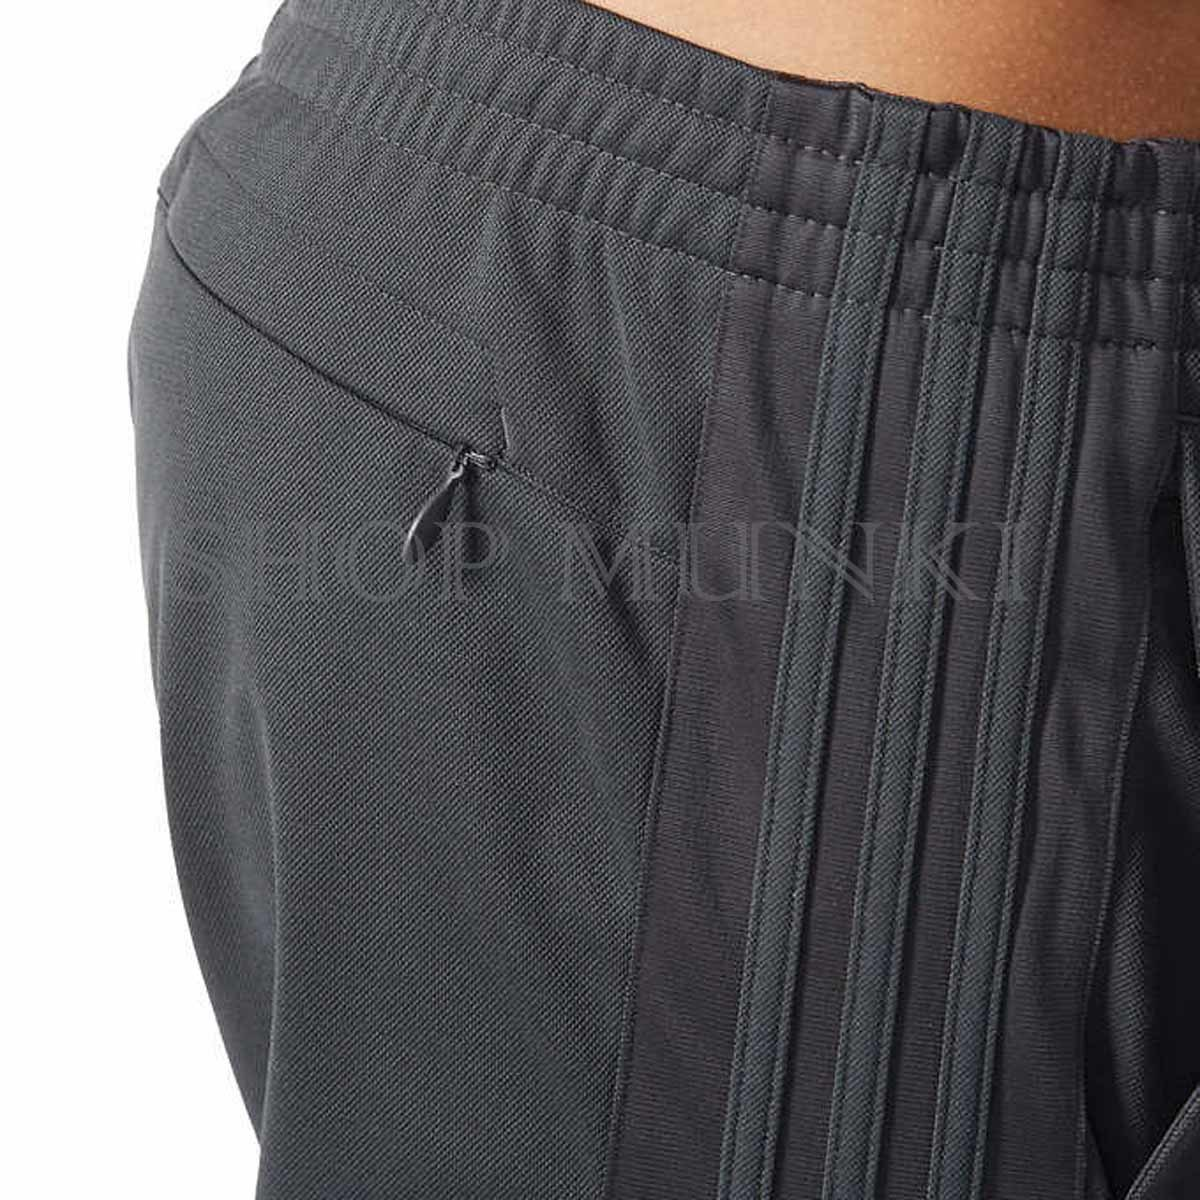 Mens Drawstring Pants Find the men's drawstring pants that are comfortable and versatile with linen pants and chinos. Perfect for wearing during warm weather or a .